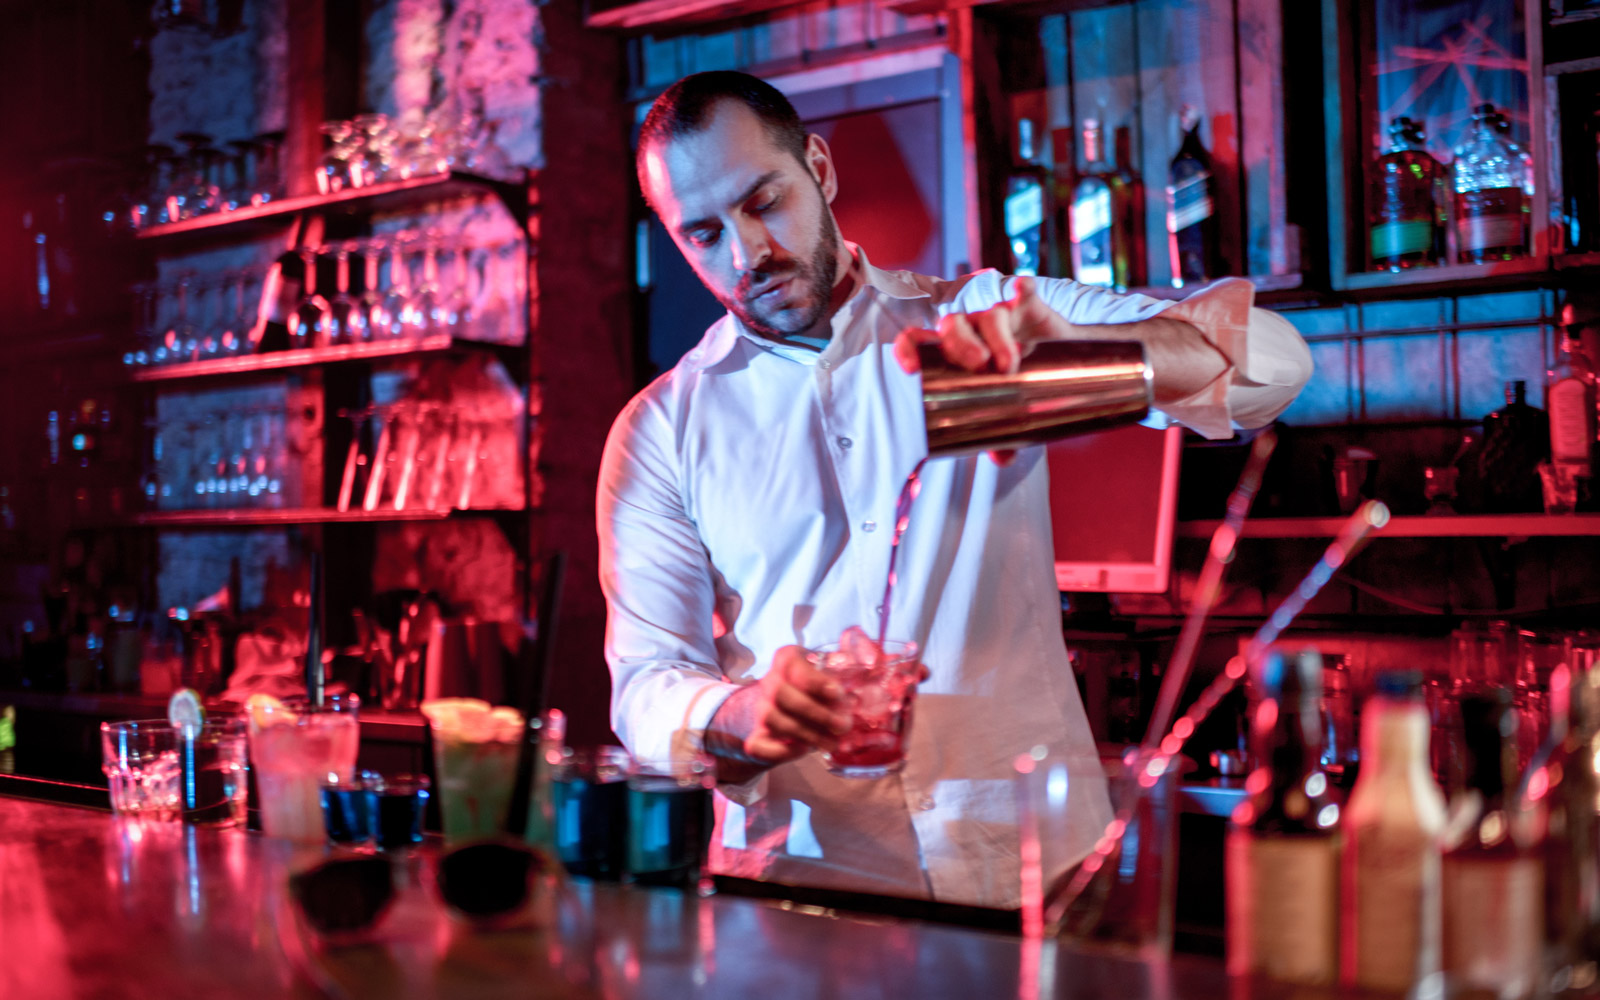 Bartender in white shirt pouring a cocktail into glass.